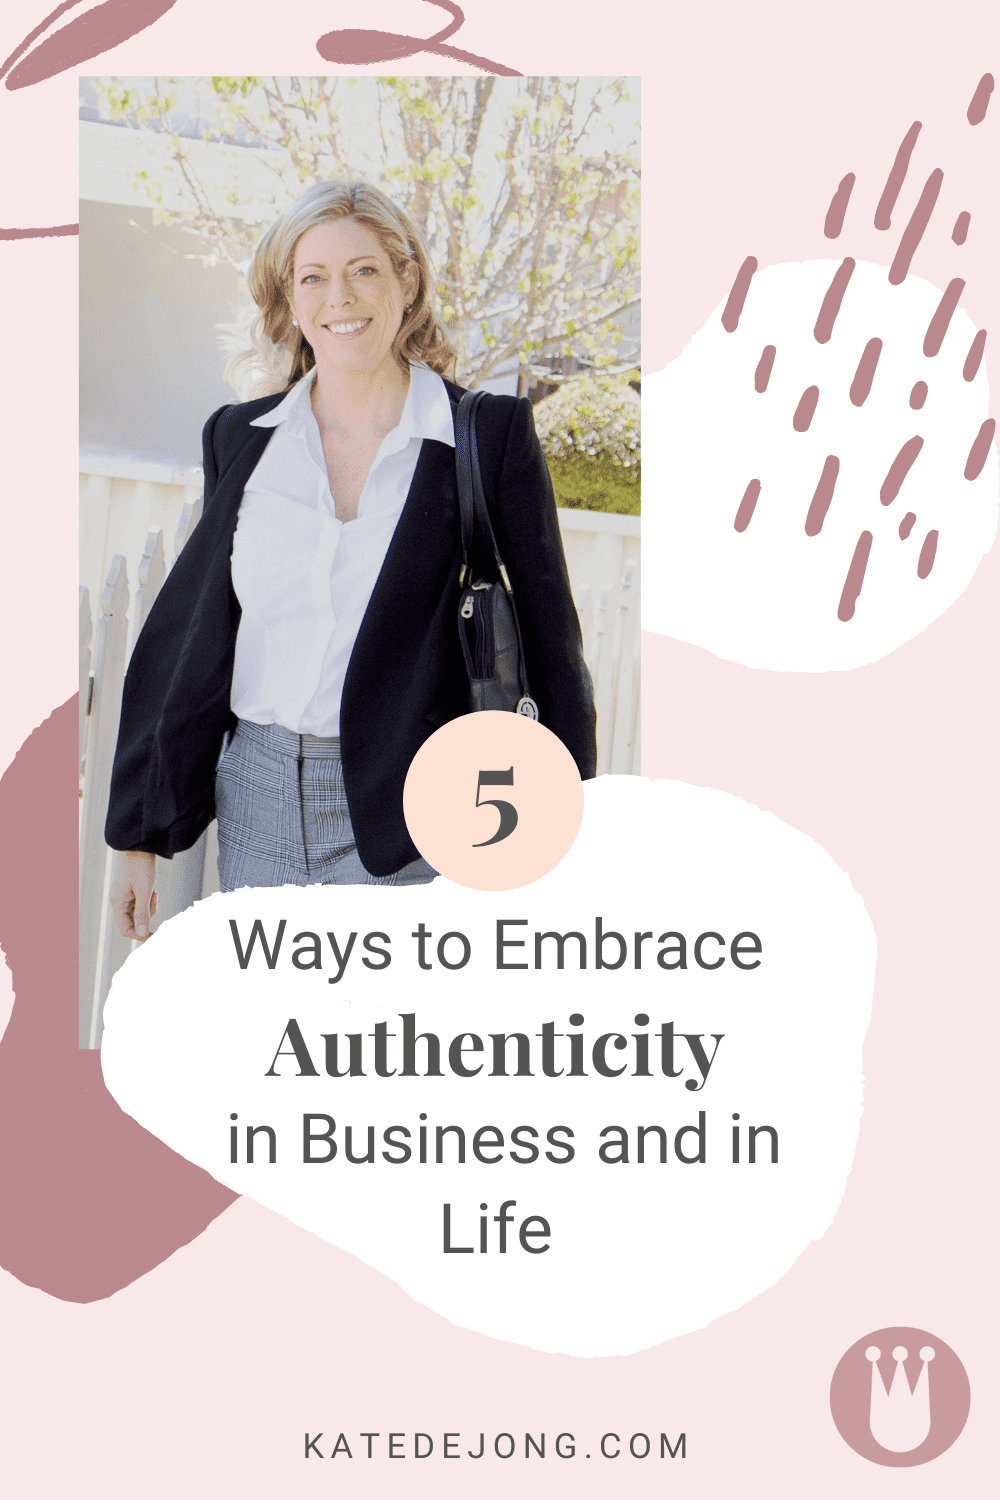 Everyone tells you to be authentic in business, but do you ever wonder that means exactly? Finding my authentic path and voice has been quite a journey for me too, and in this blog I unpack how to live in full alignment with your personal truth and to enjoy the freedom that comes from embracing authenticity as your way of business and life! #authenticity #beyourself  #findyourpurpose  #personalgrowth #findyourcalling #purposefulliving  #selflove #fempire #fempirecoach #businesscoachforwomen